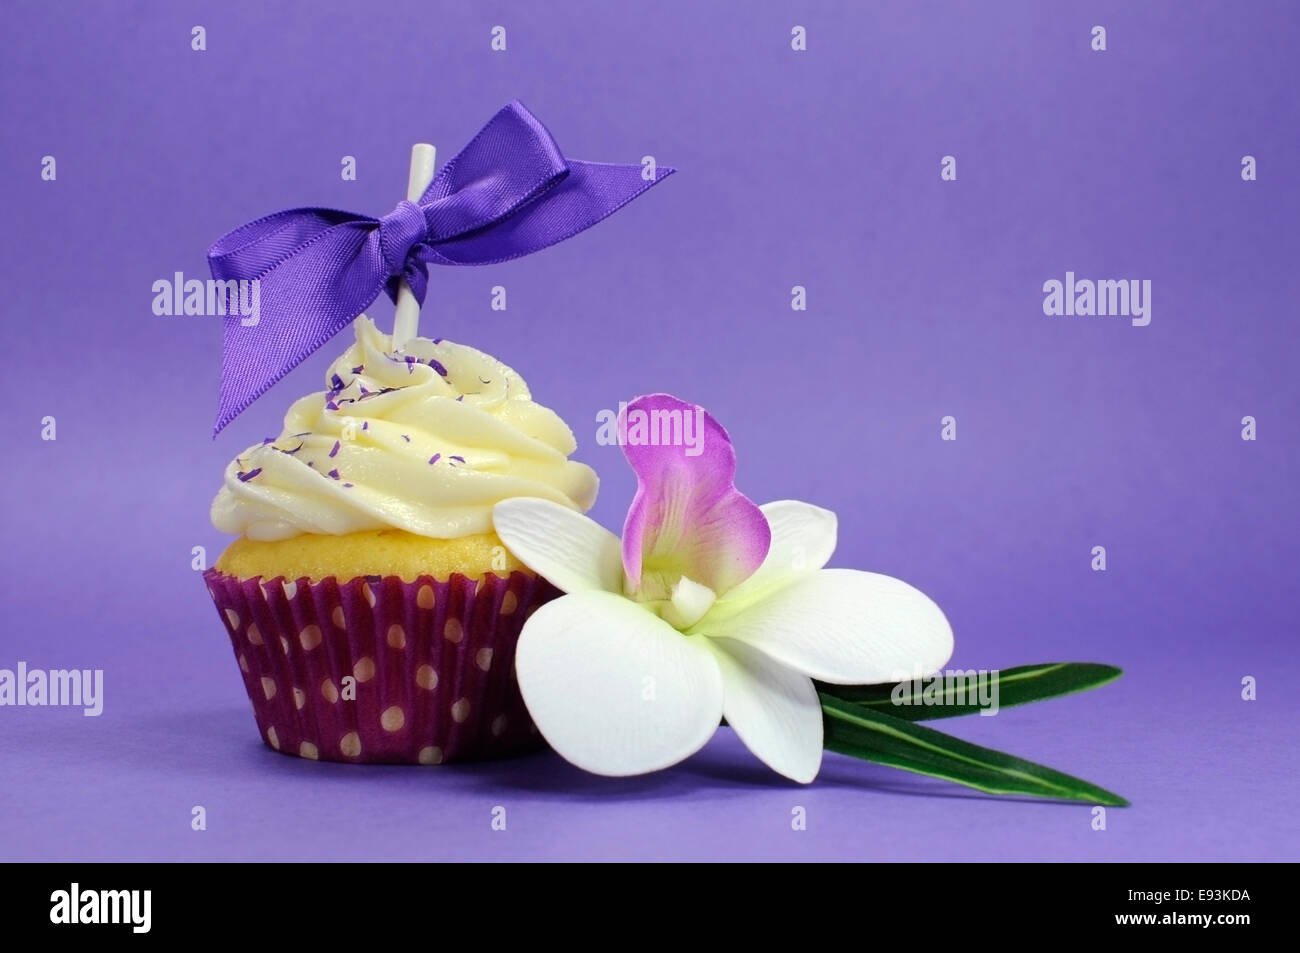 Purple theme cupcake with orchid flower for wedding bridal or baby purple theme cupcake with orchid flower for wedding bridal or baby shower mothers day or female birthday izmirmasajfo Gallery